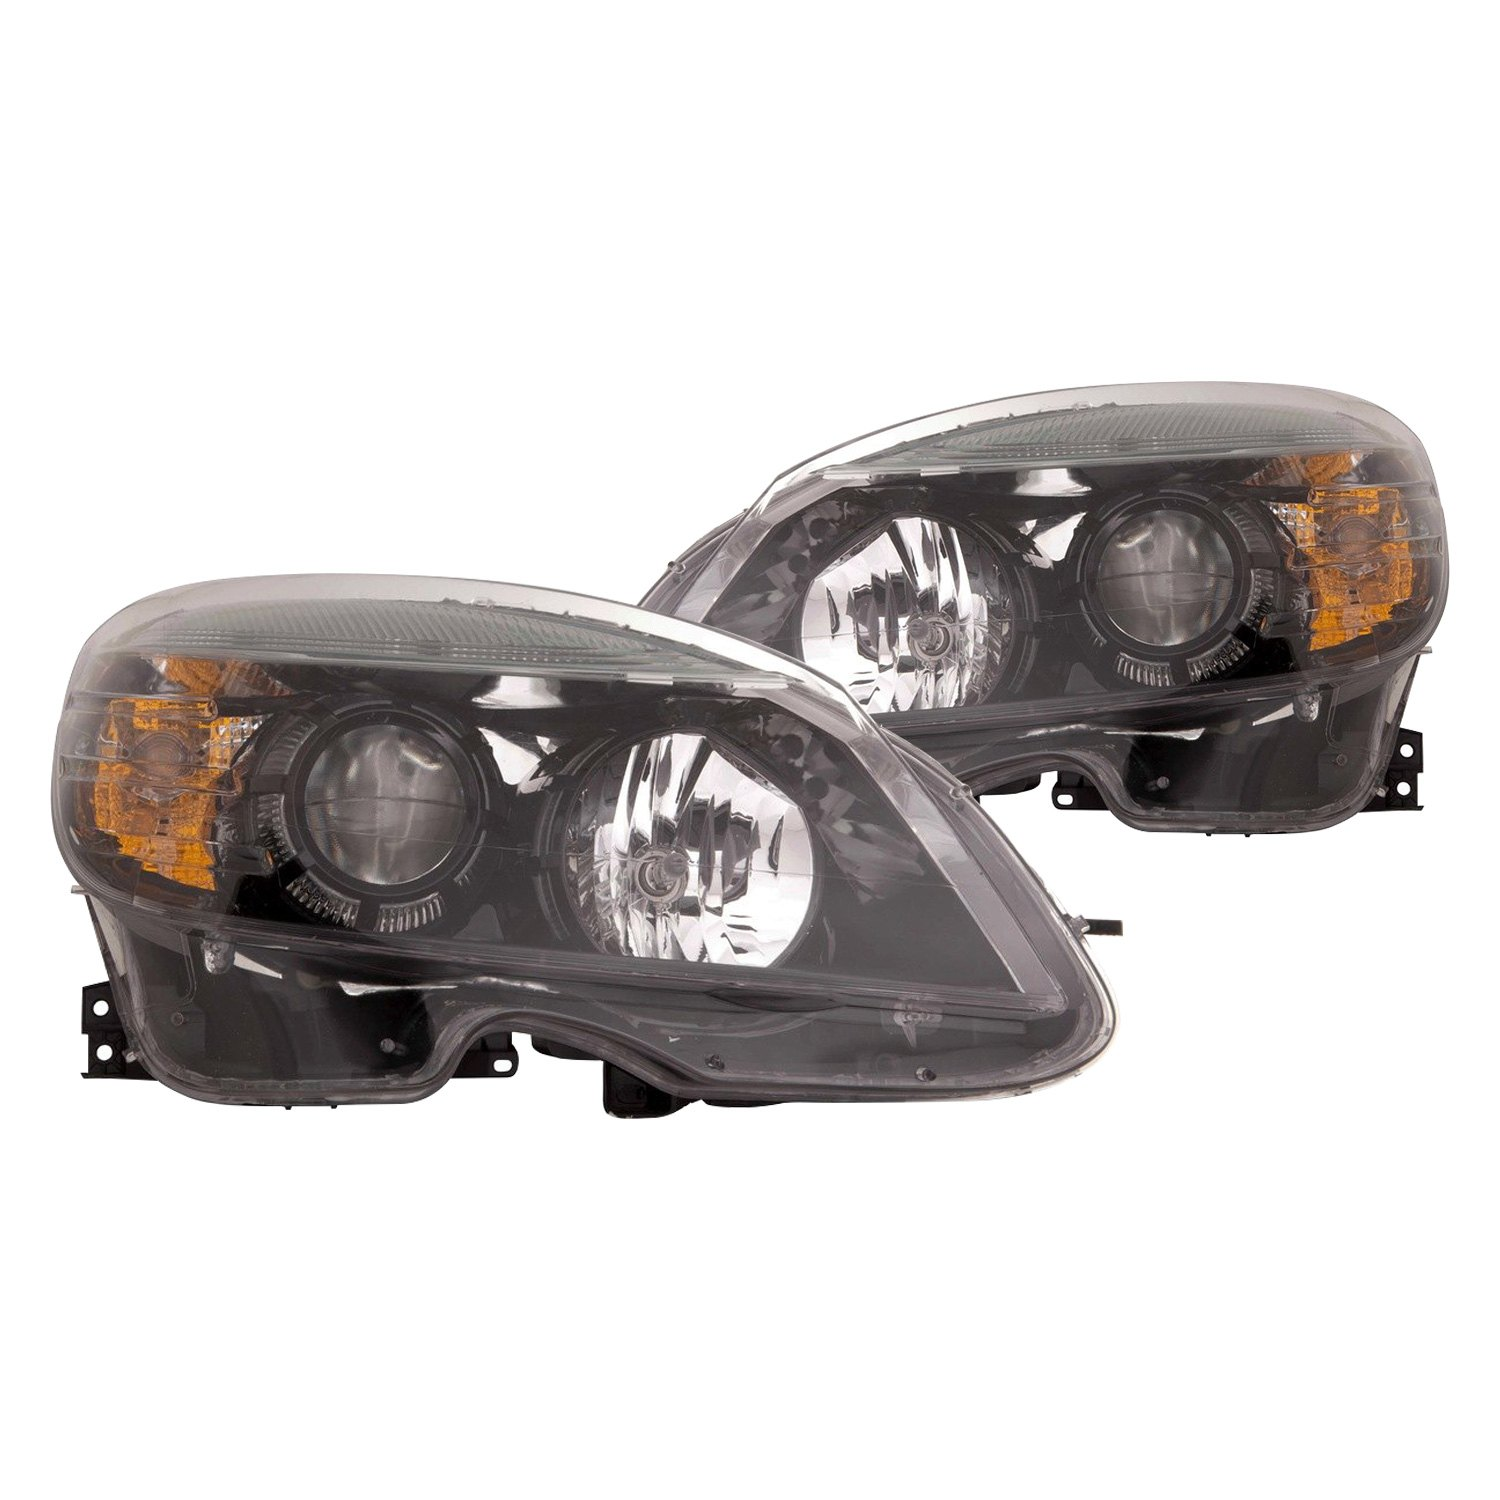 Depo mercedes c230 c300 c350 c63 amg with factory for Mercedes benz c300 headlights